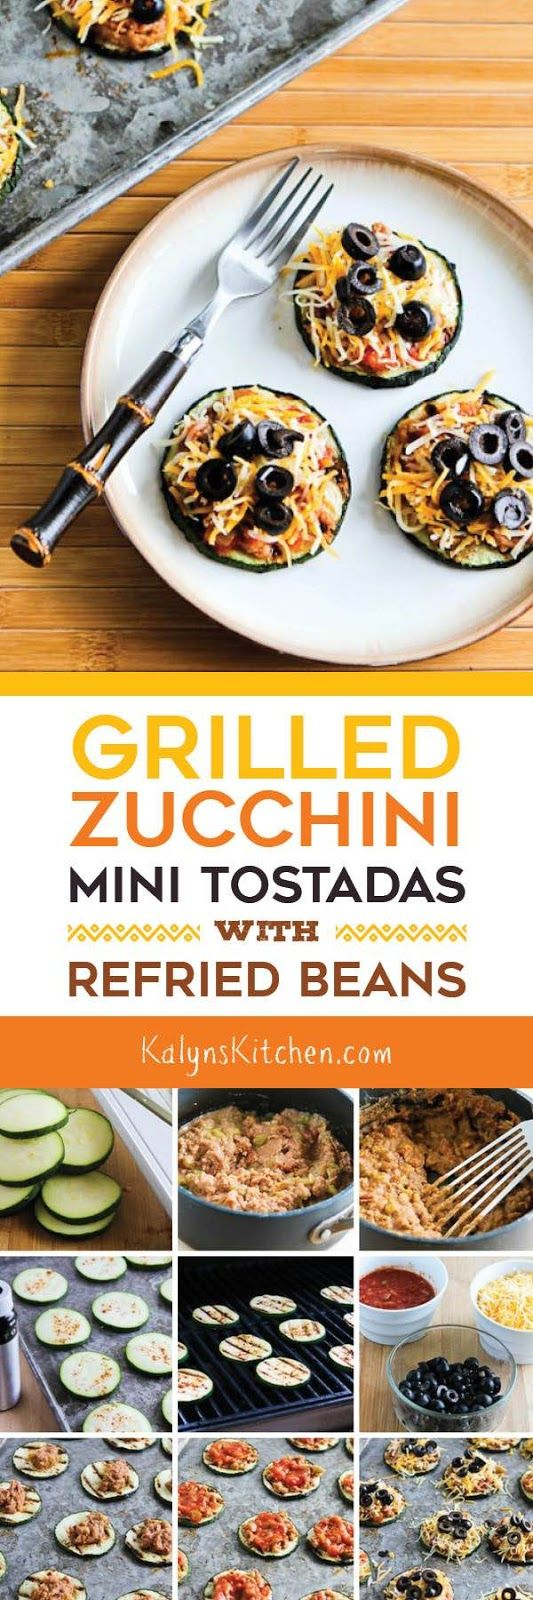 Grilled Zucchini Mini-Tostadas with Refried Beans are perfect for Meatless…